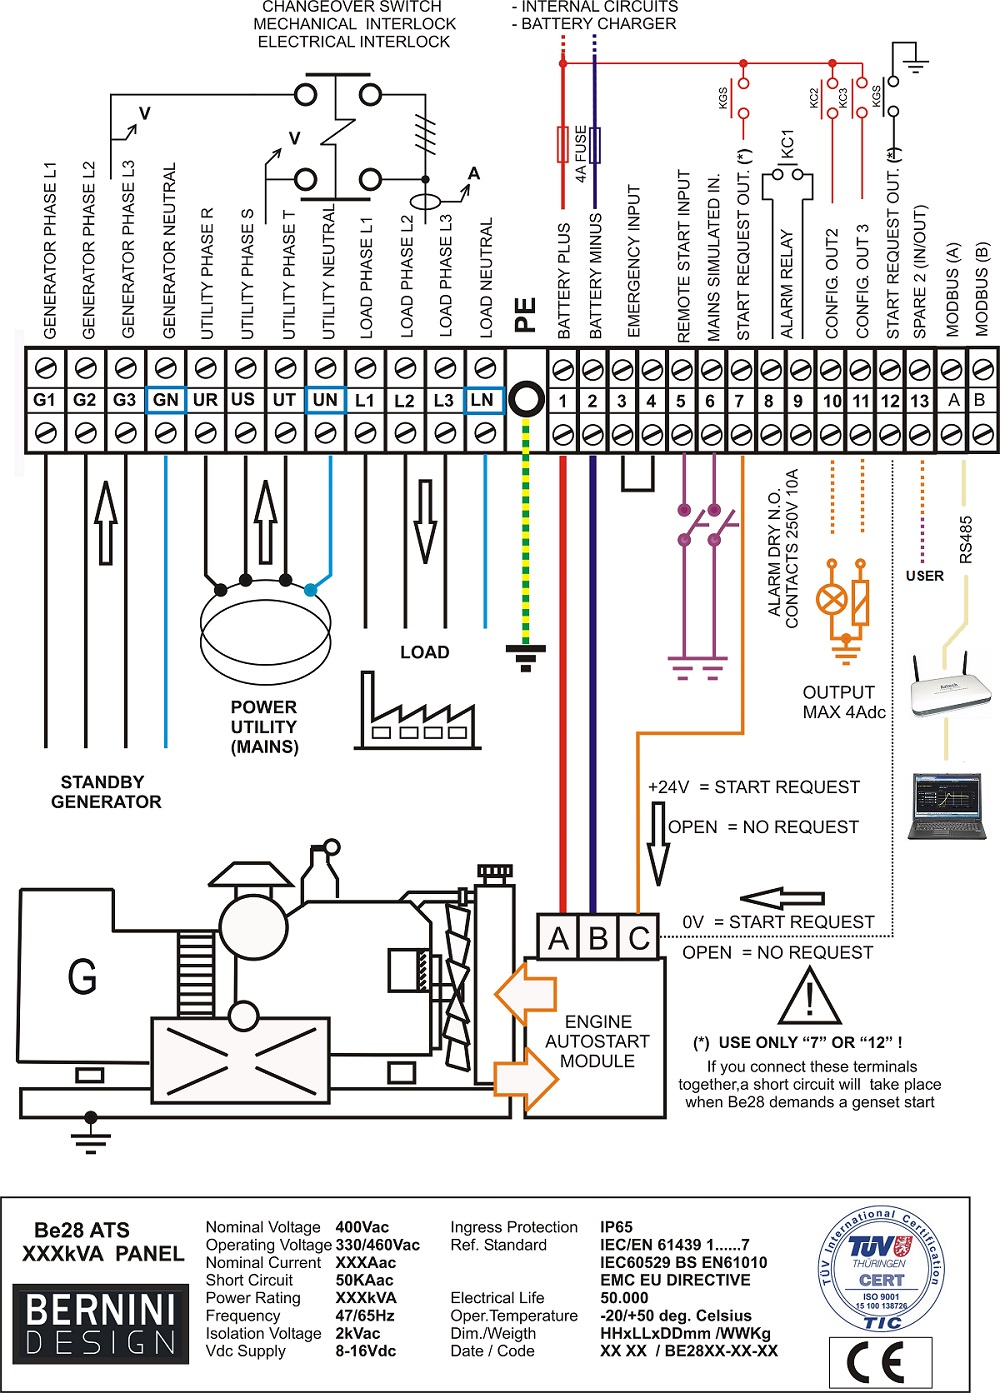 medium resolution of up a generator plug wiring free download wiring diagram schematic cable connector diagram free download wiring diagram schematic